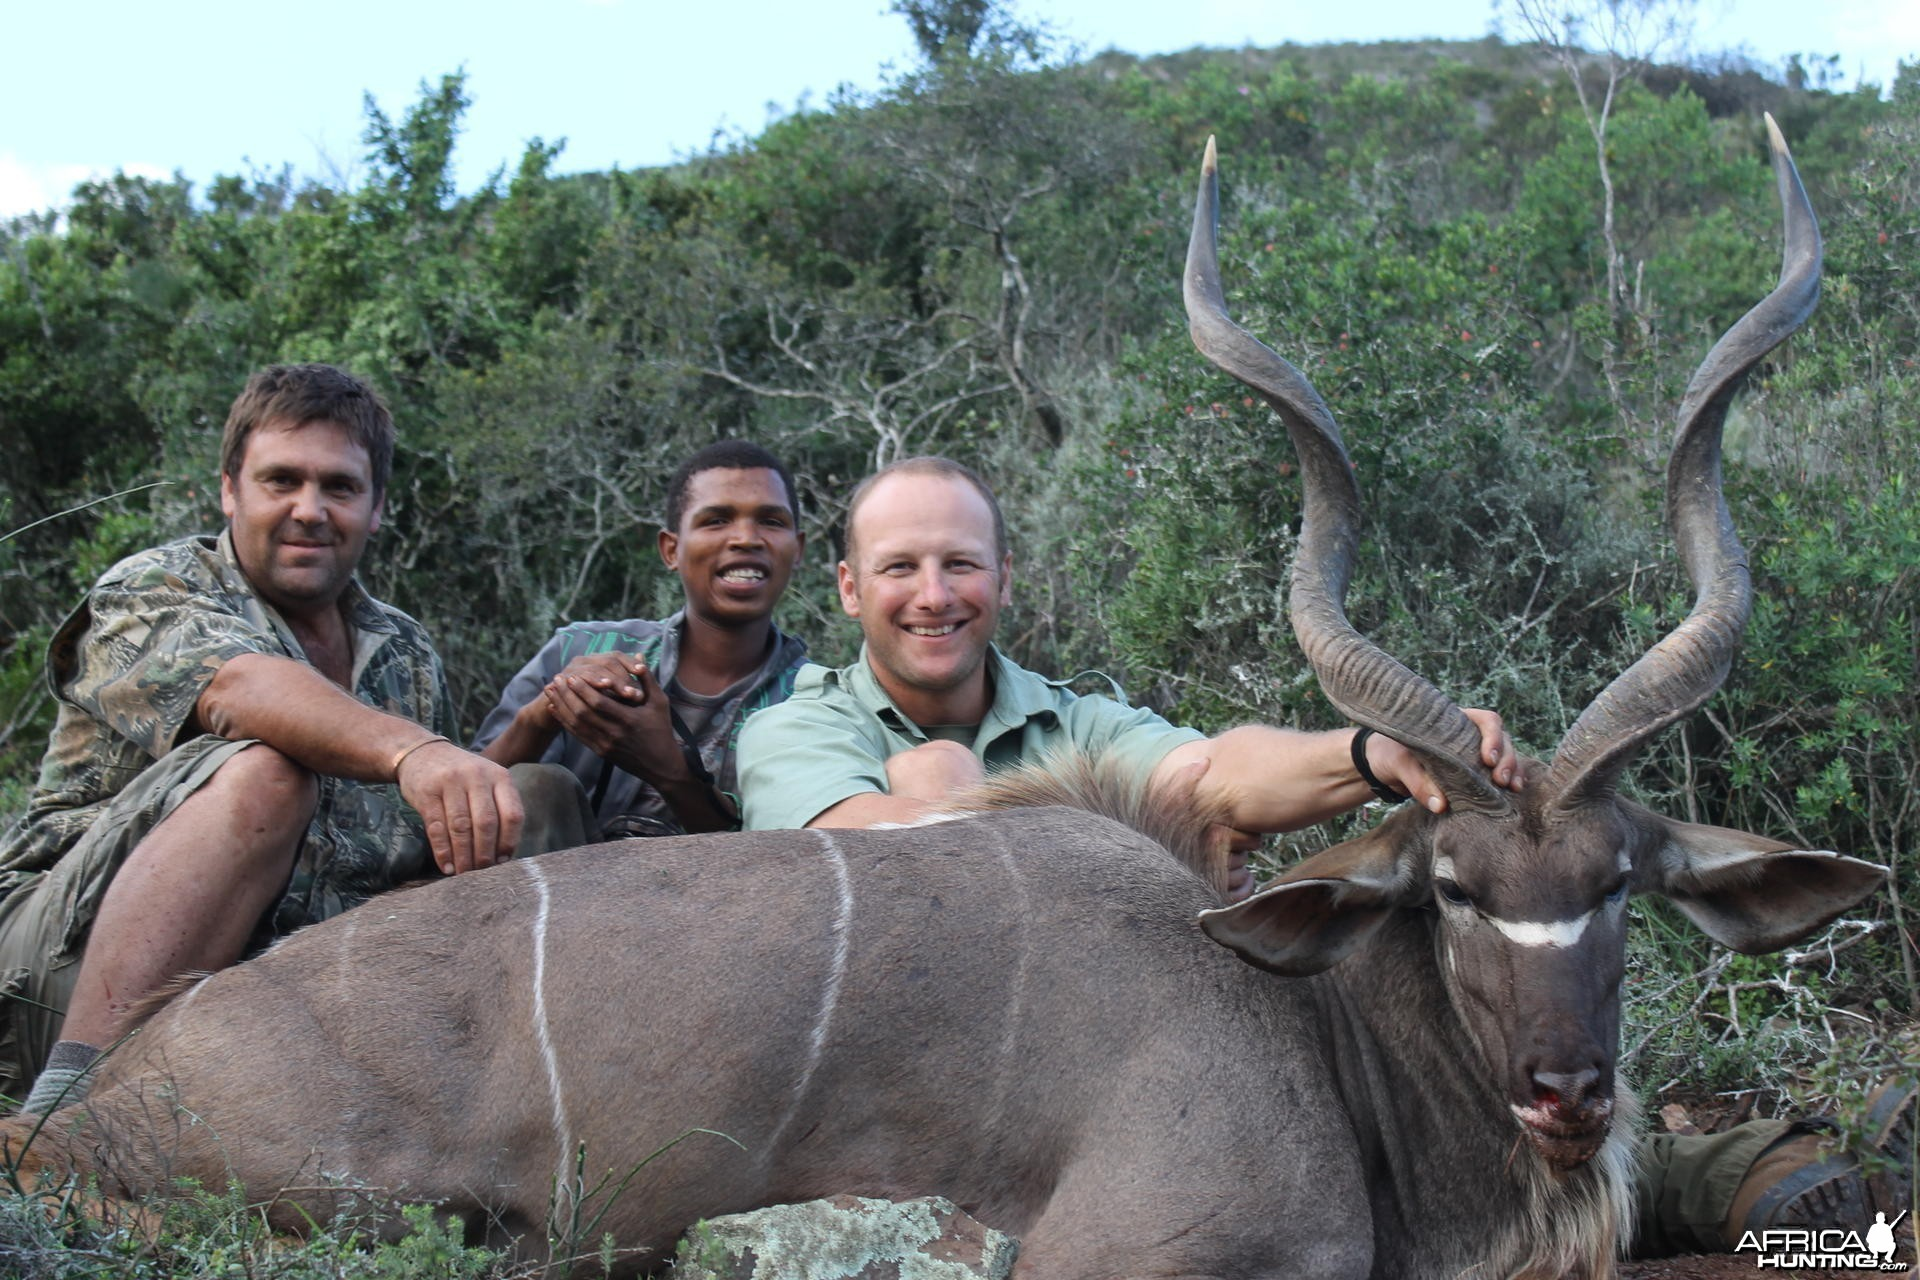 Kudu taken with Cape Valley Safaris